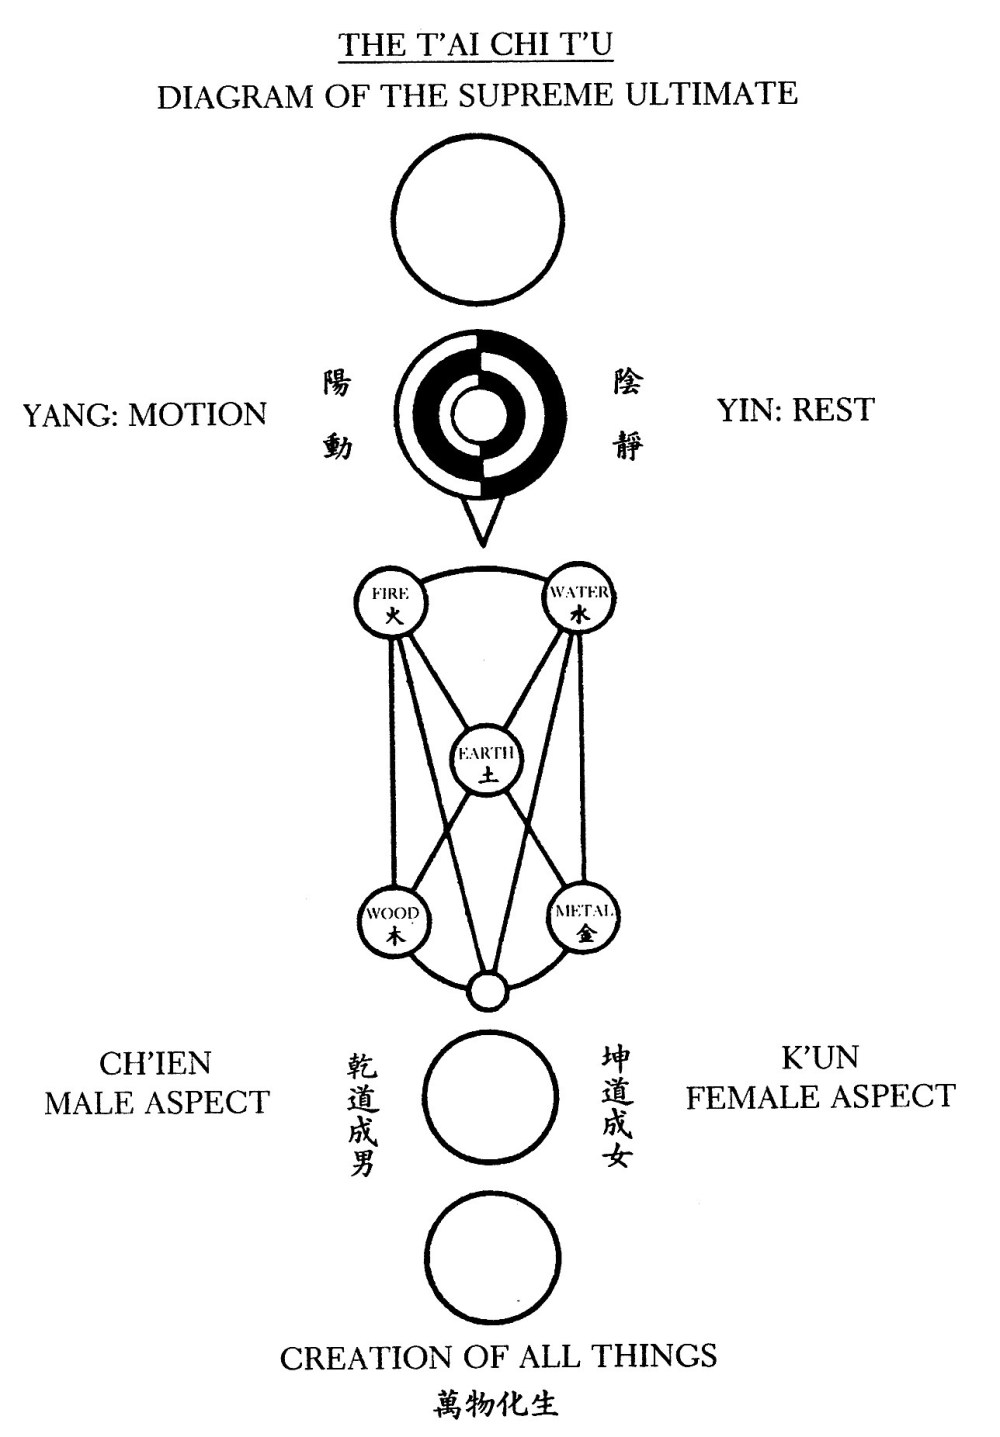 medium resolution of the tai ji tu eleventh century chinese diagram of the supreme ultimate